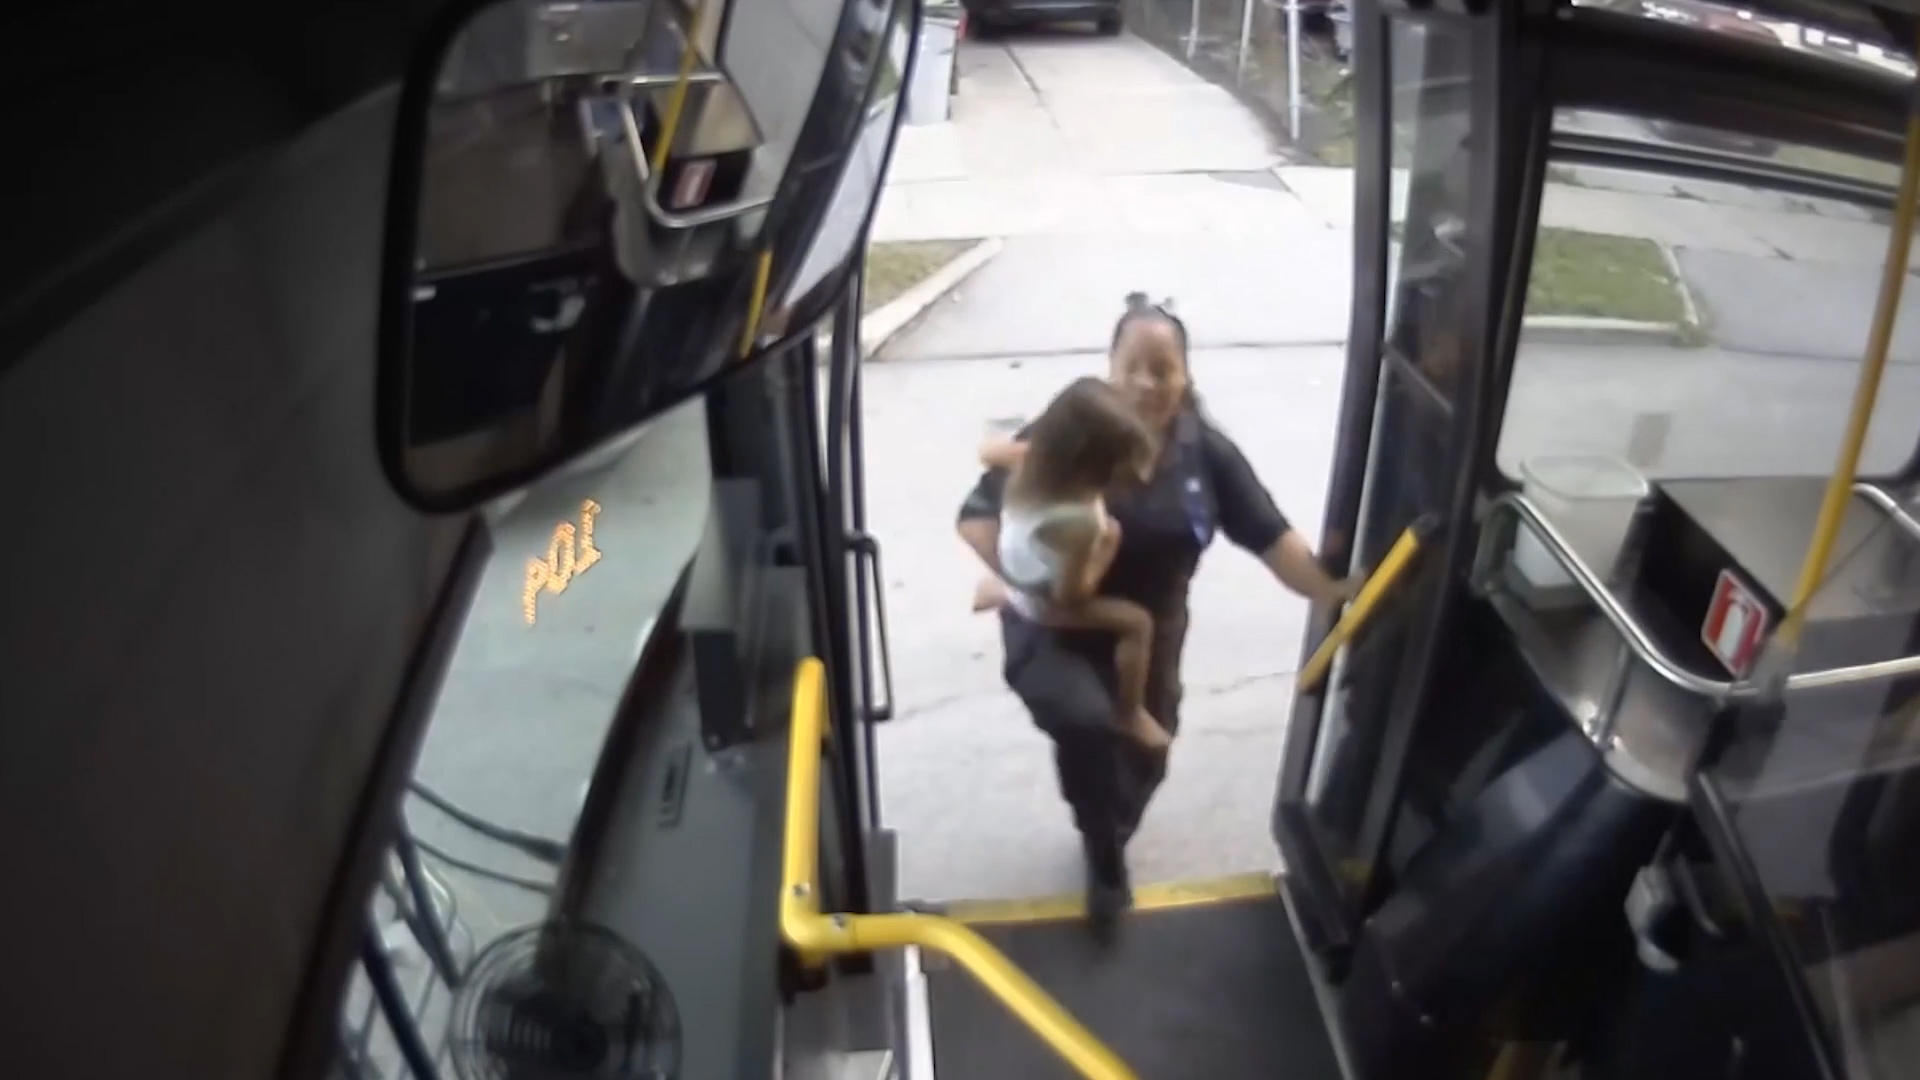 Bus driver rescues toddler wandering on United States  overpass in freezing conditions